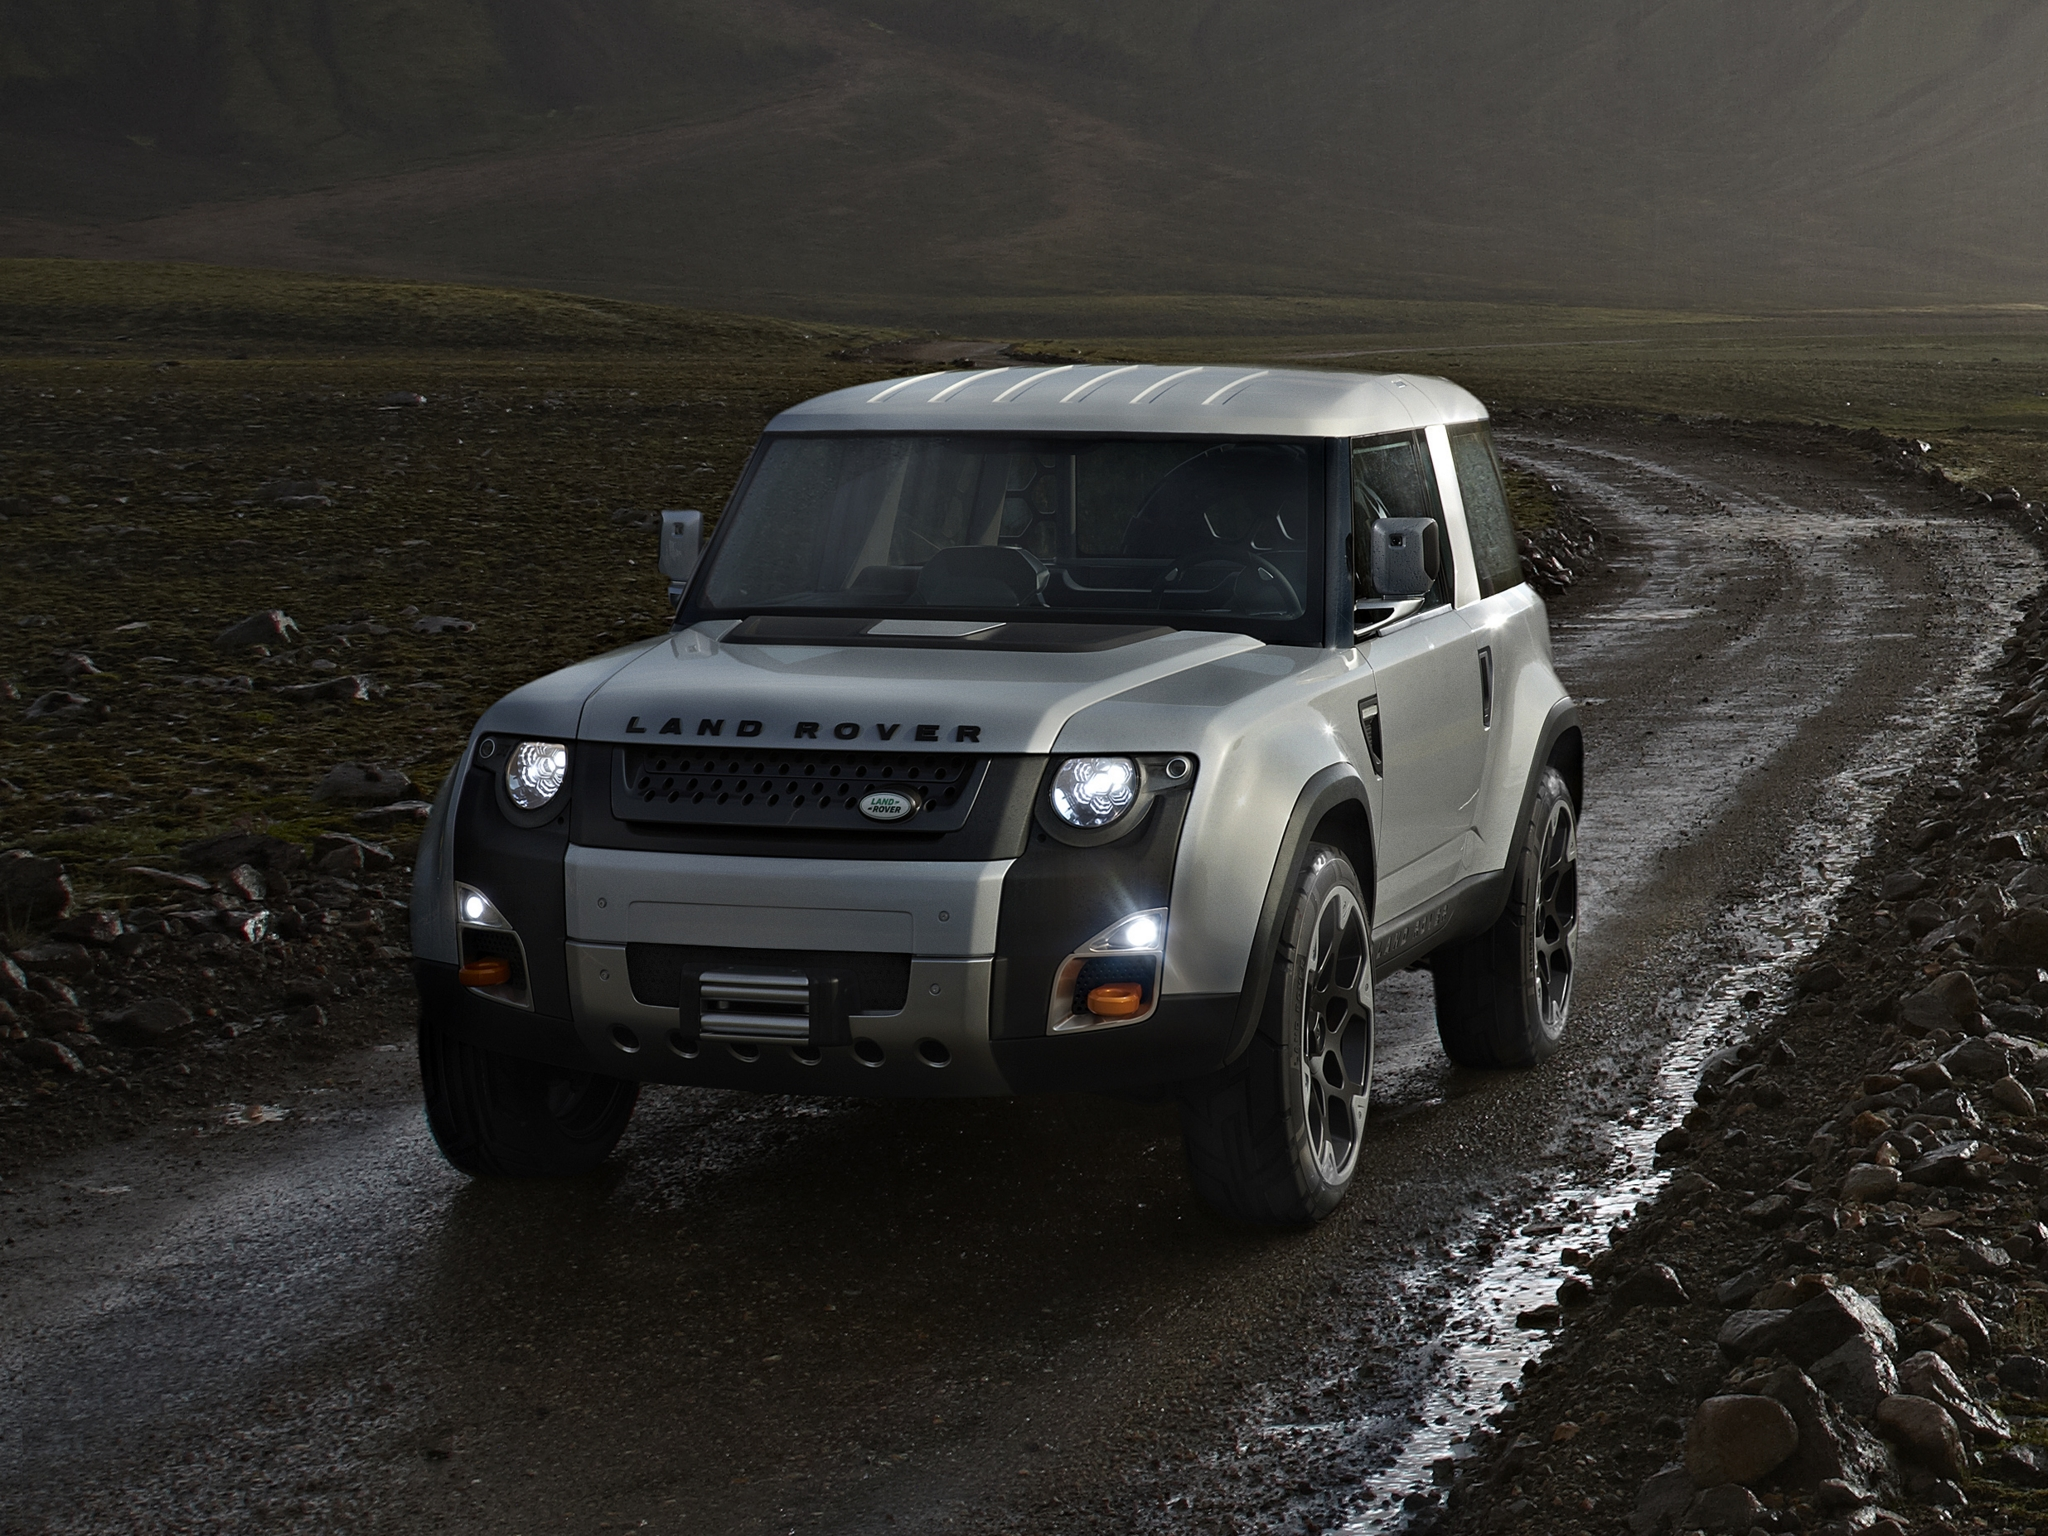 2019 Land Rover DC100 Concept photo - 5